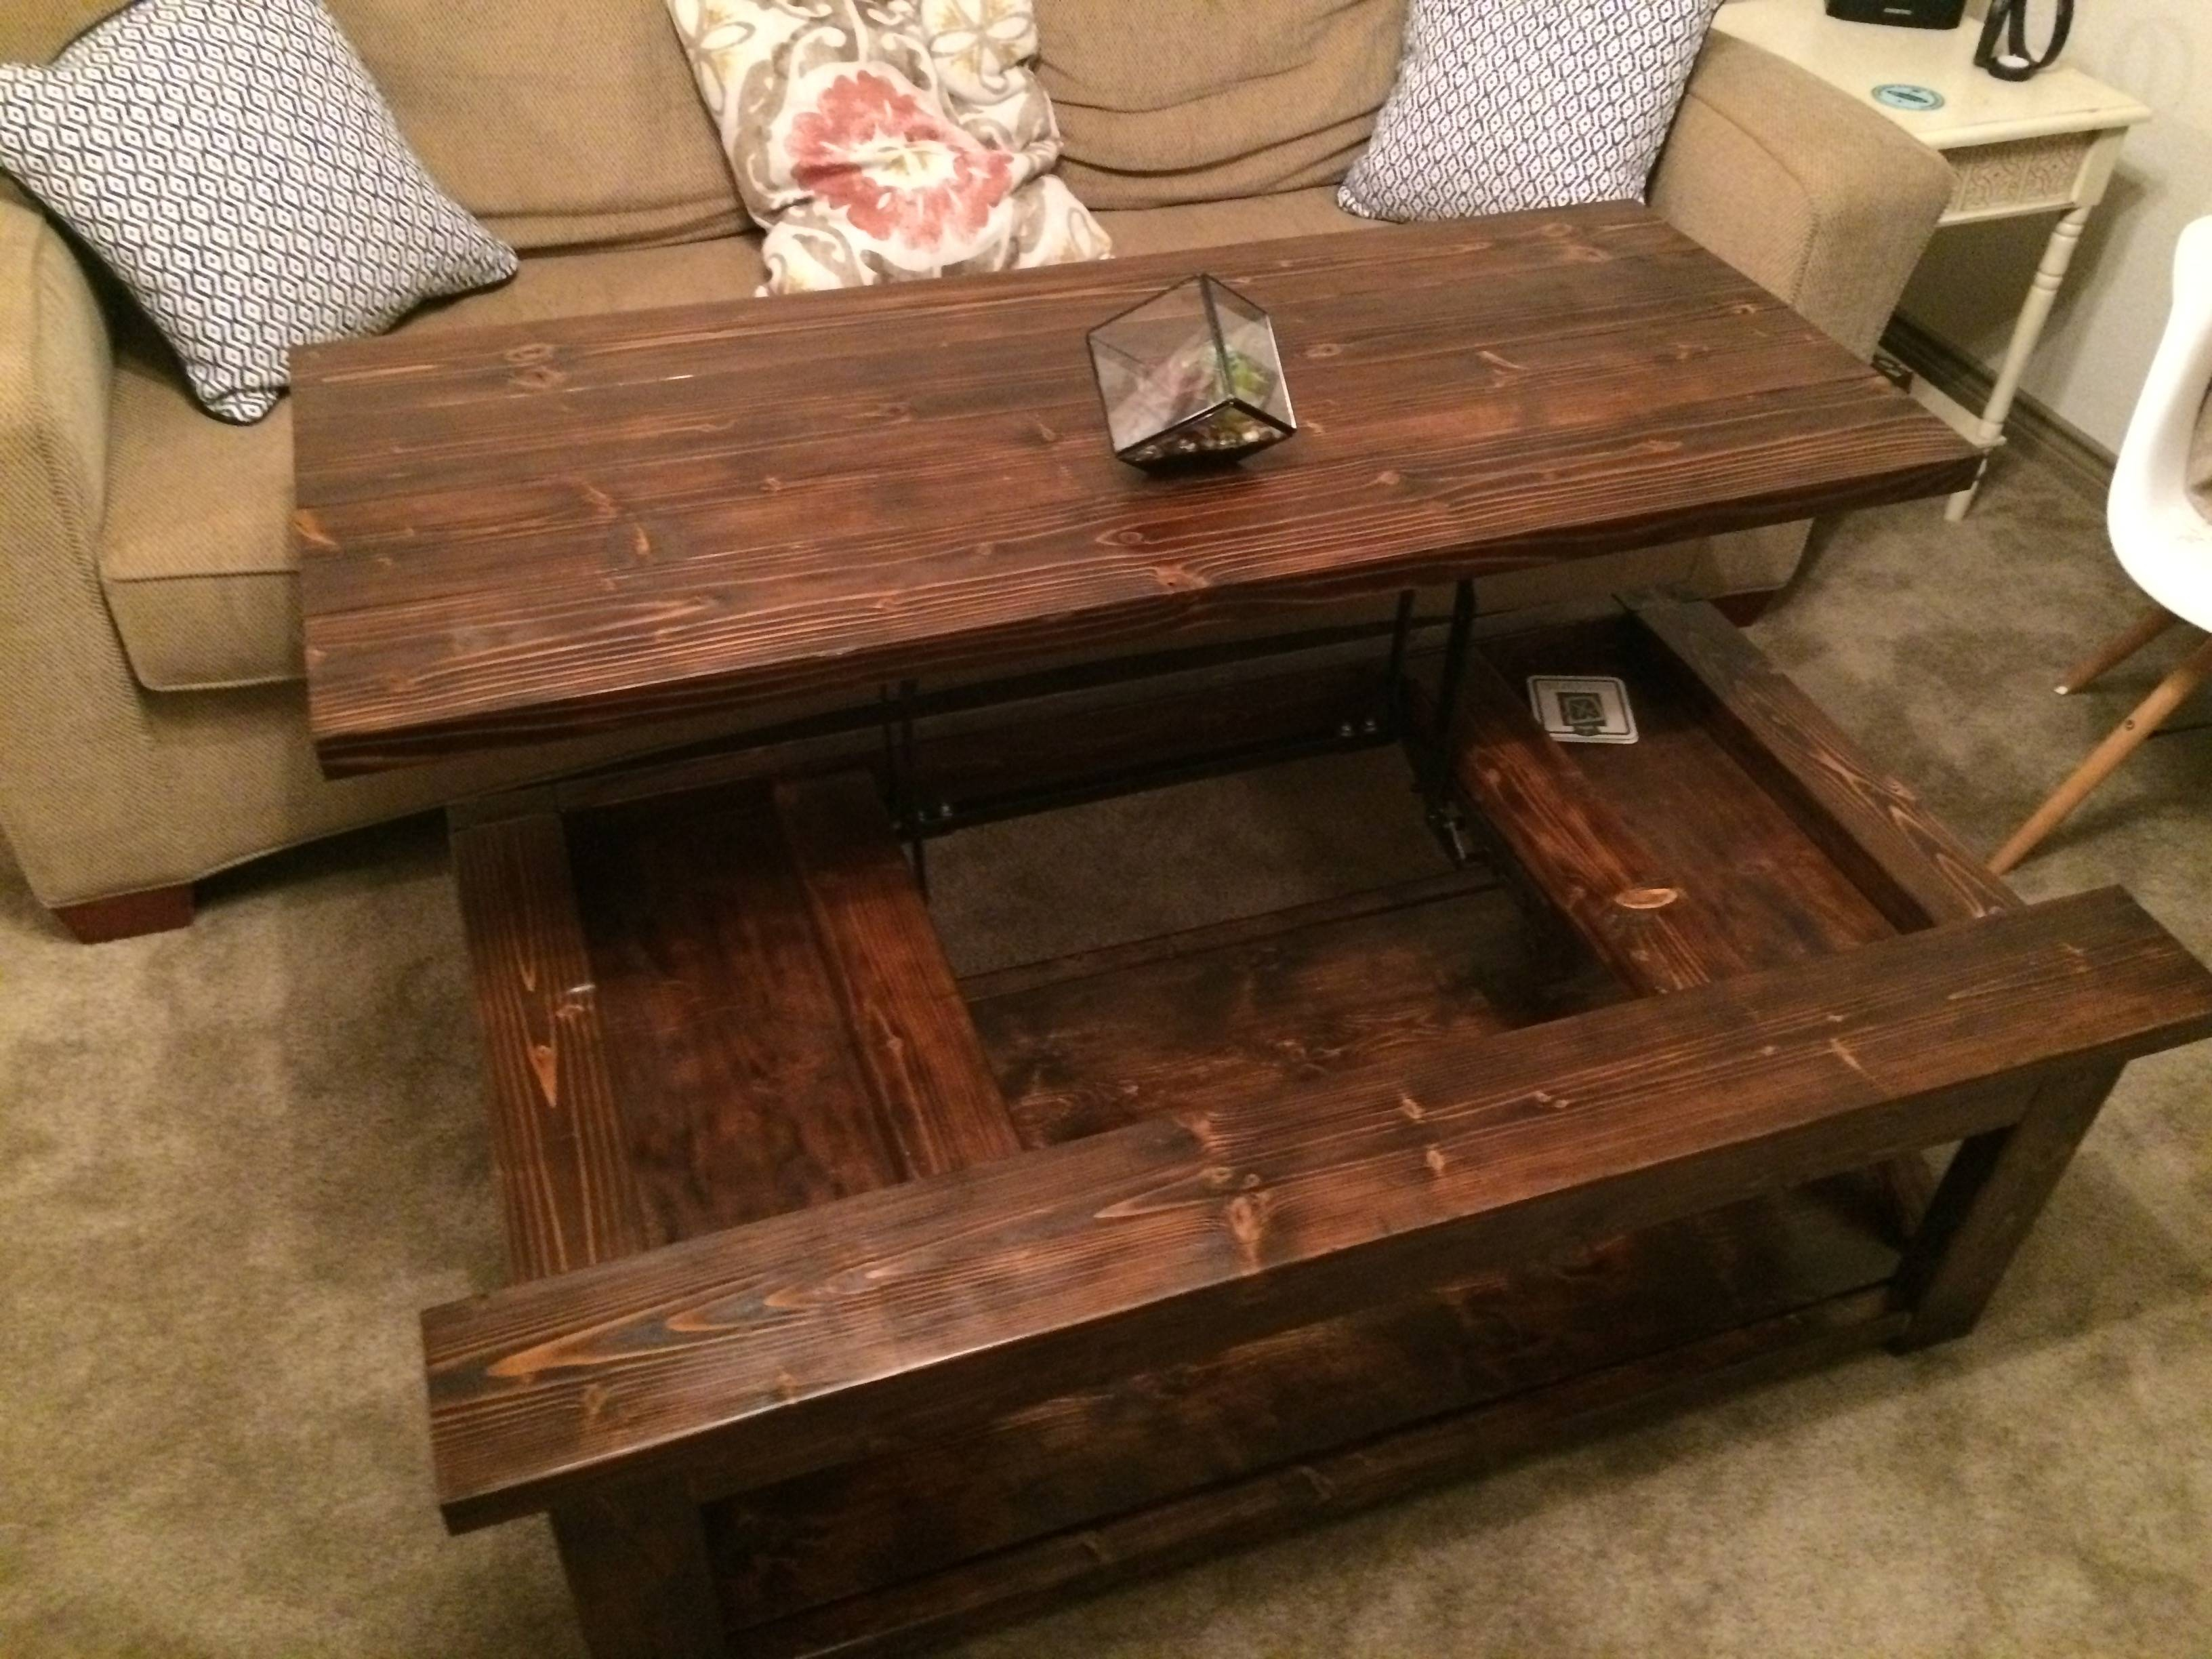 Ana White | Diy Lift Top Coffee Table - Rustic X Style - Diy Projects inside Coffee Tables With Rising Top (Image 2 of 30)